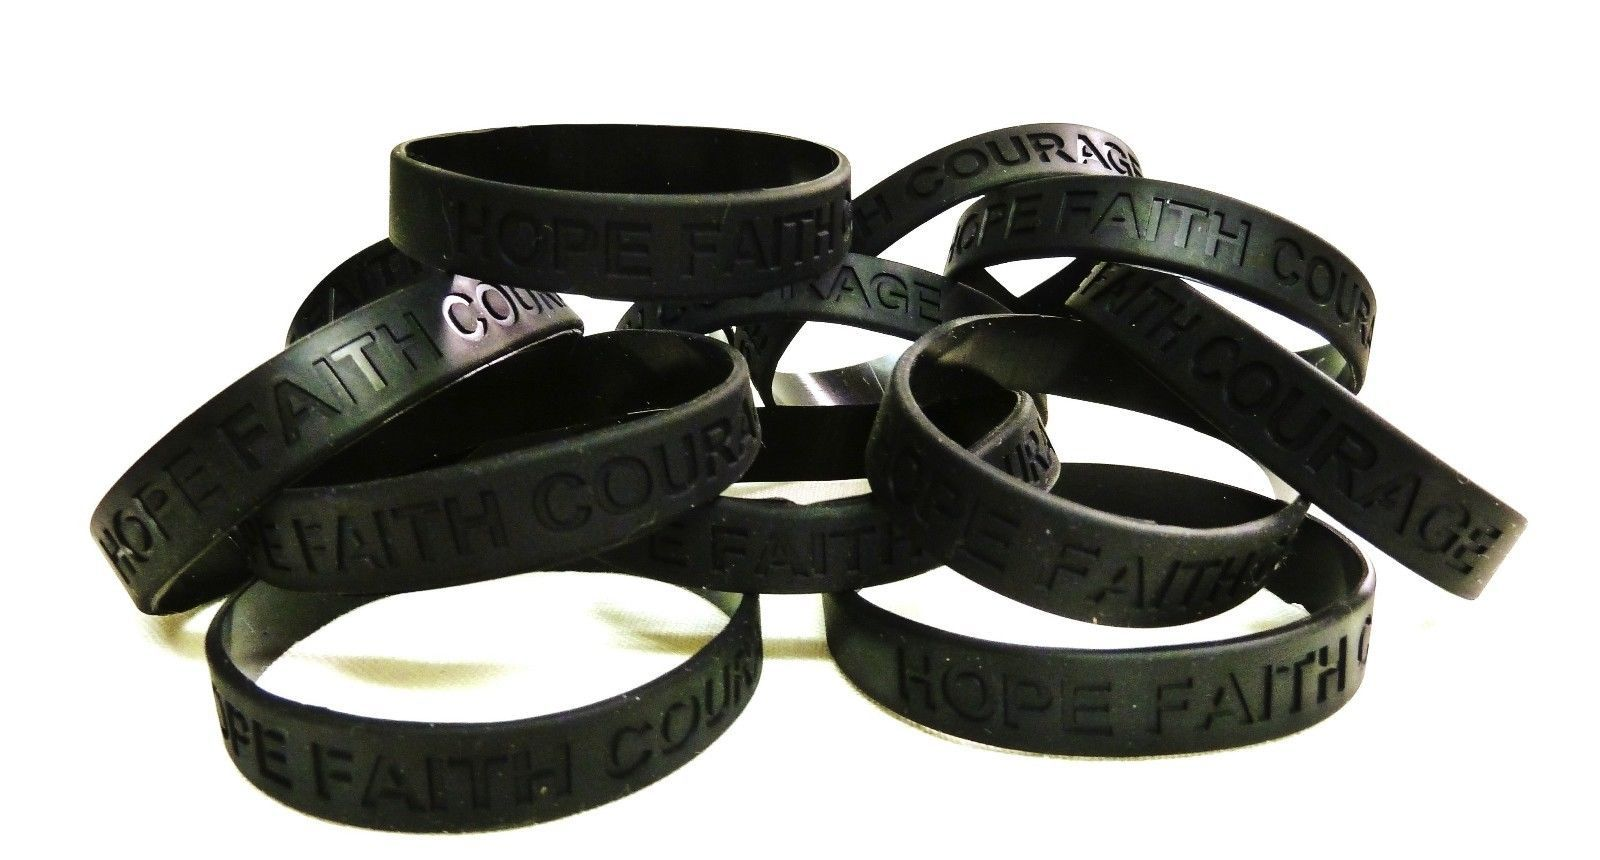 Black Awareness Bracelets 100 Piece Lot Hope Faith Courage Many Cancer Cause New